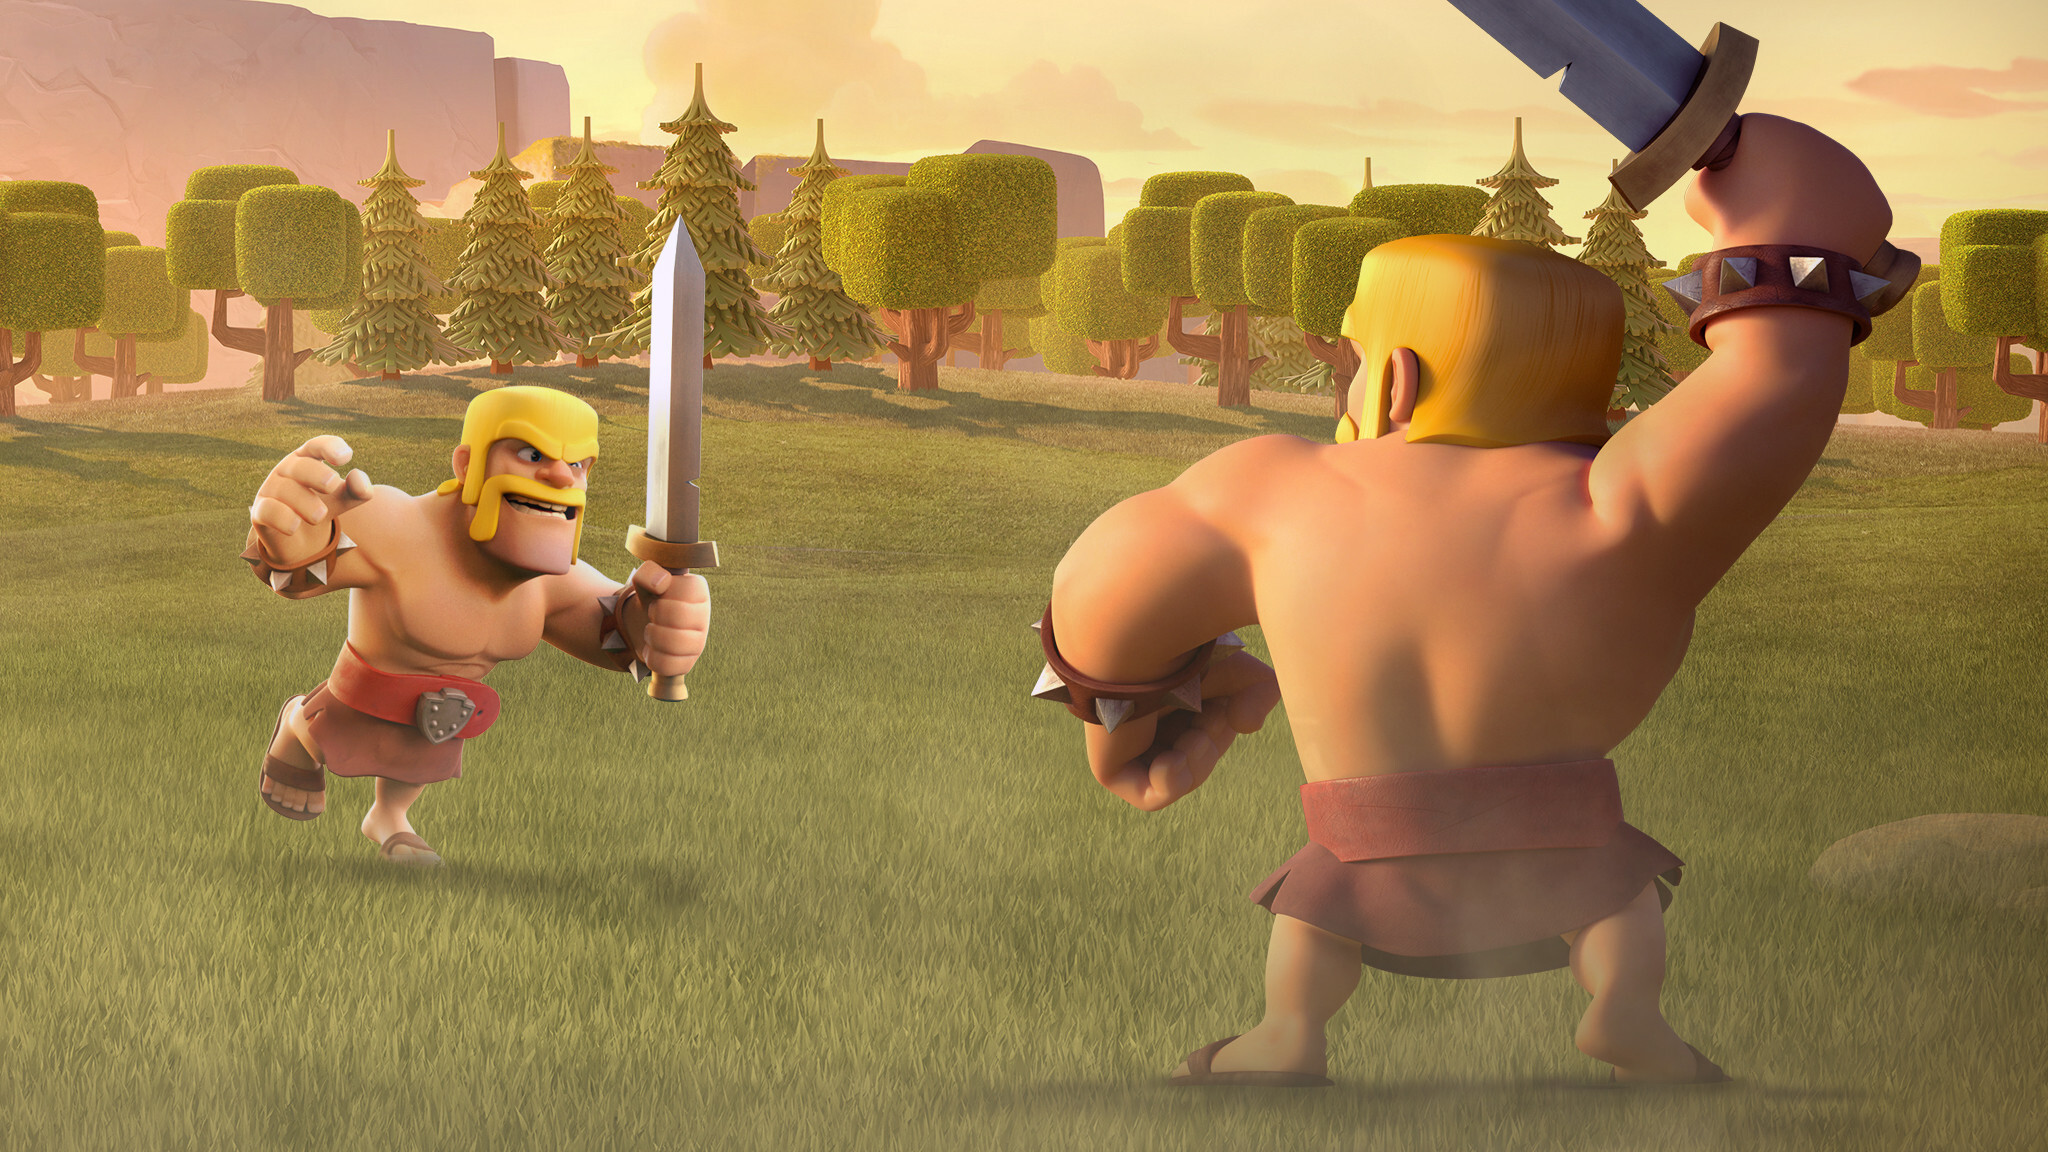 Barbarian Clash Of Clans Hd Hd Games 4k Wallpapers: 2048x1152 Barbarian Clash Of Clans 2048x1152 Resolution HD